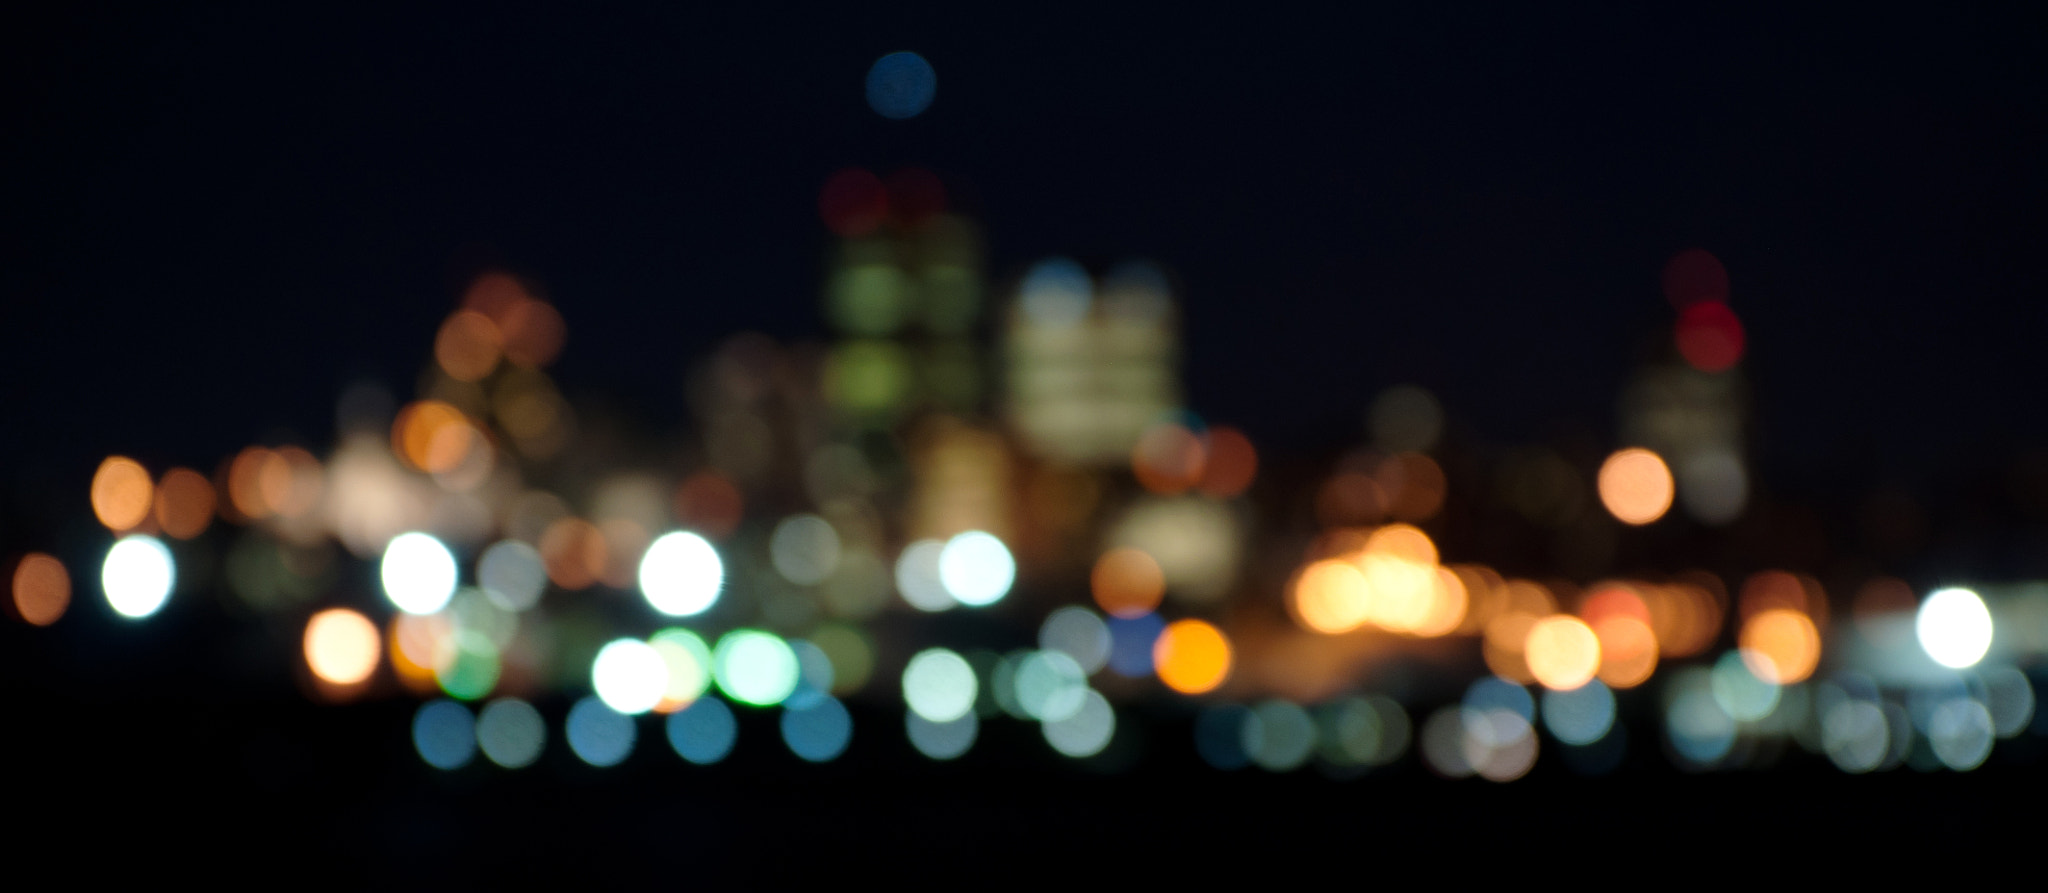 Photograph Quebec city bokeh by Martin Cauchon on 500px